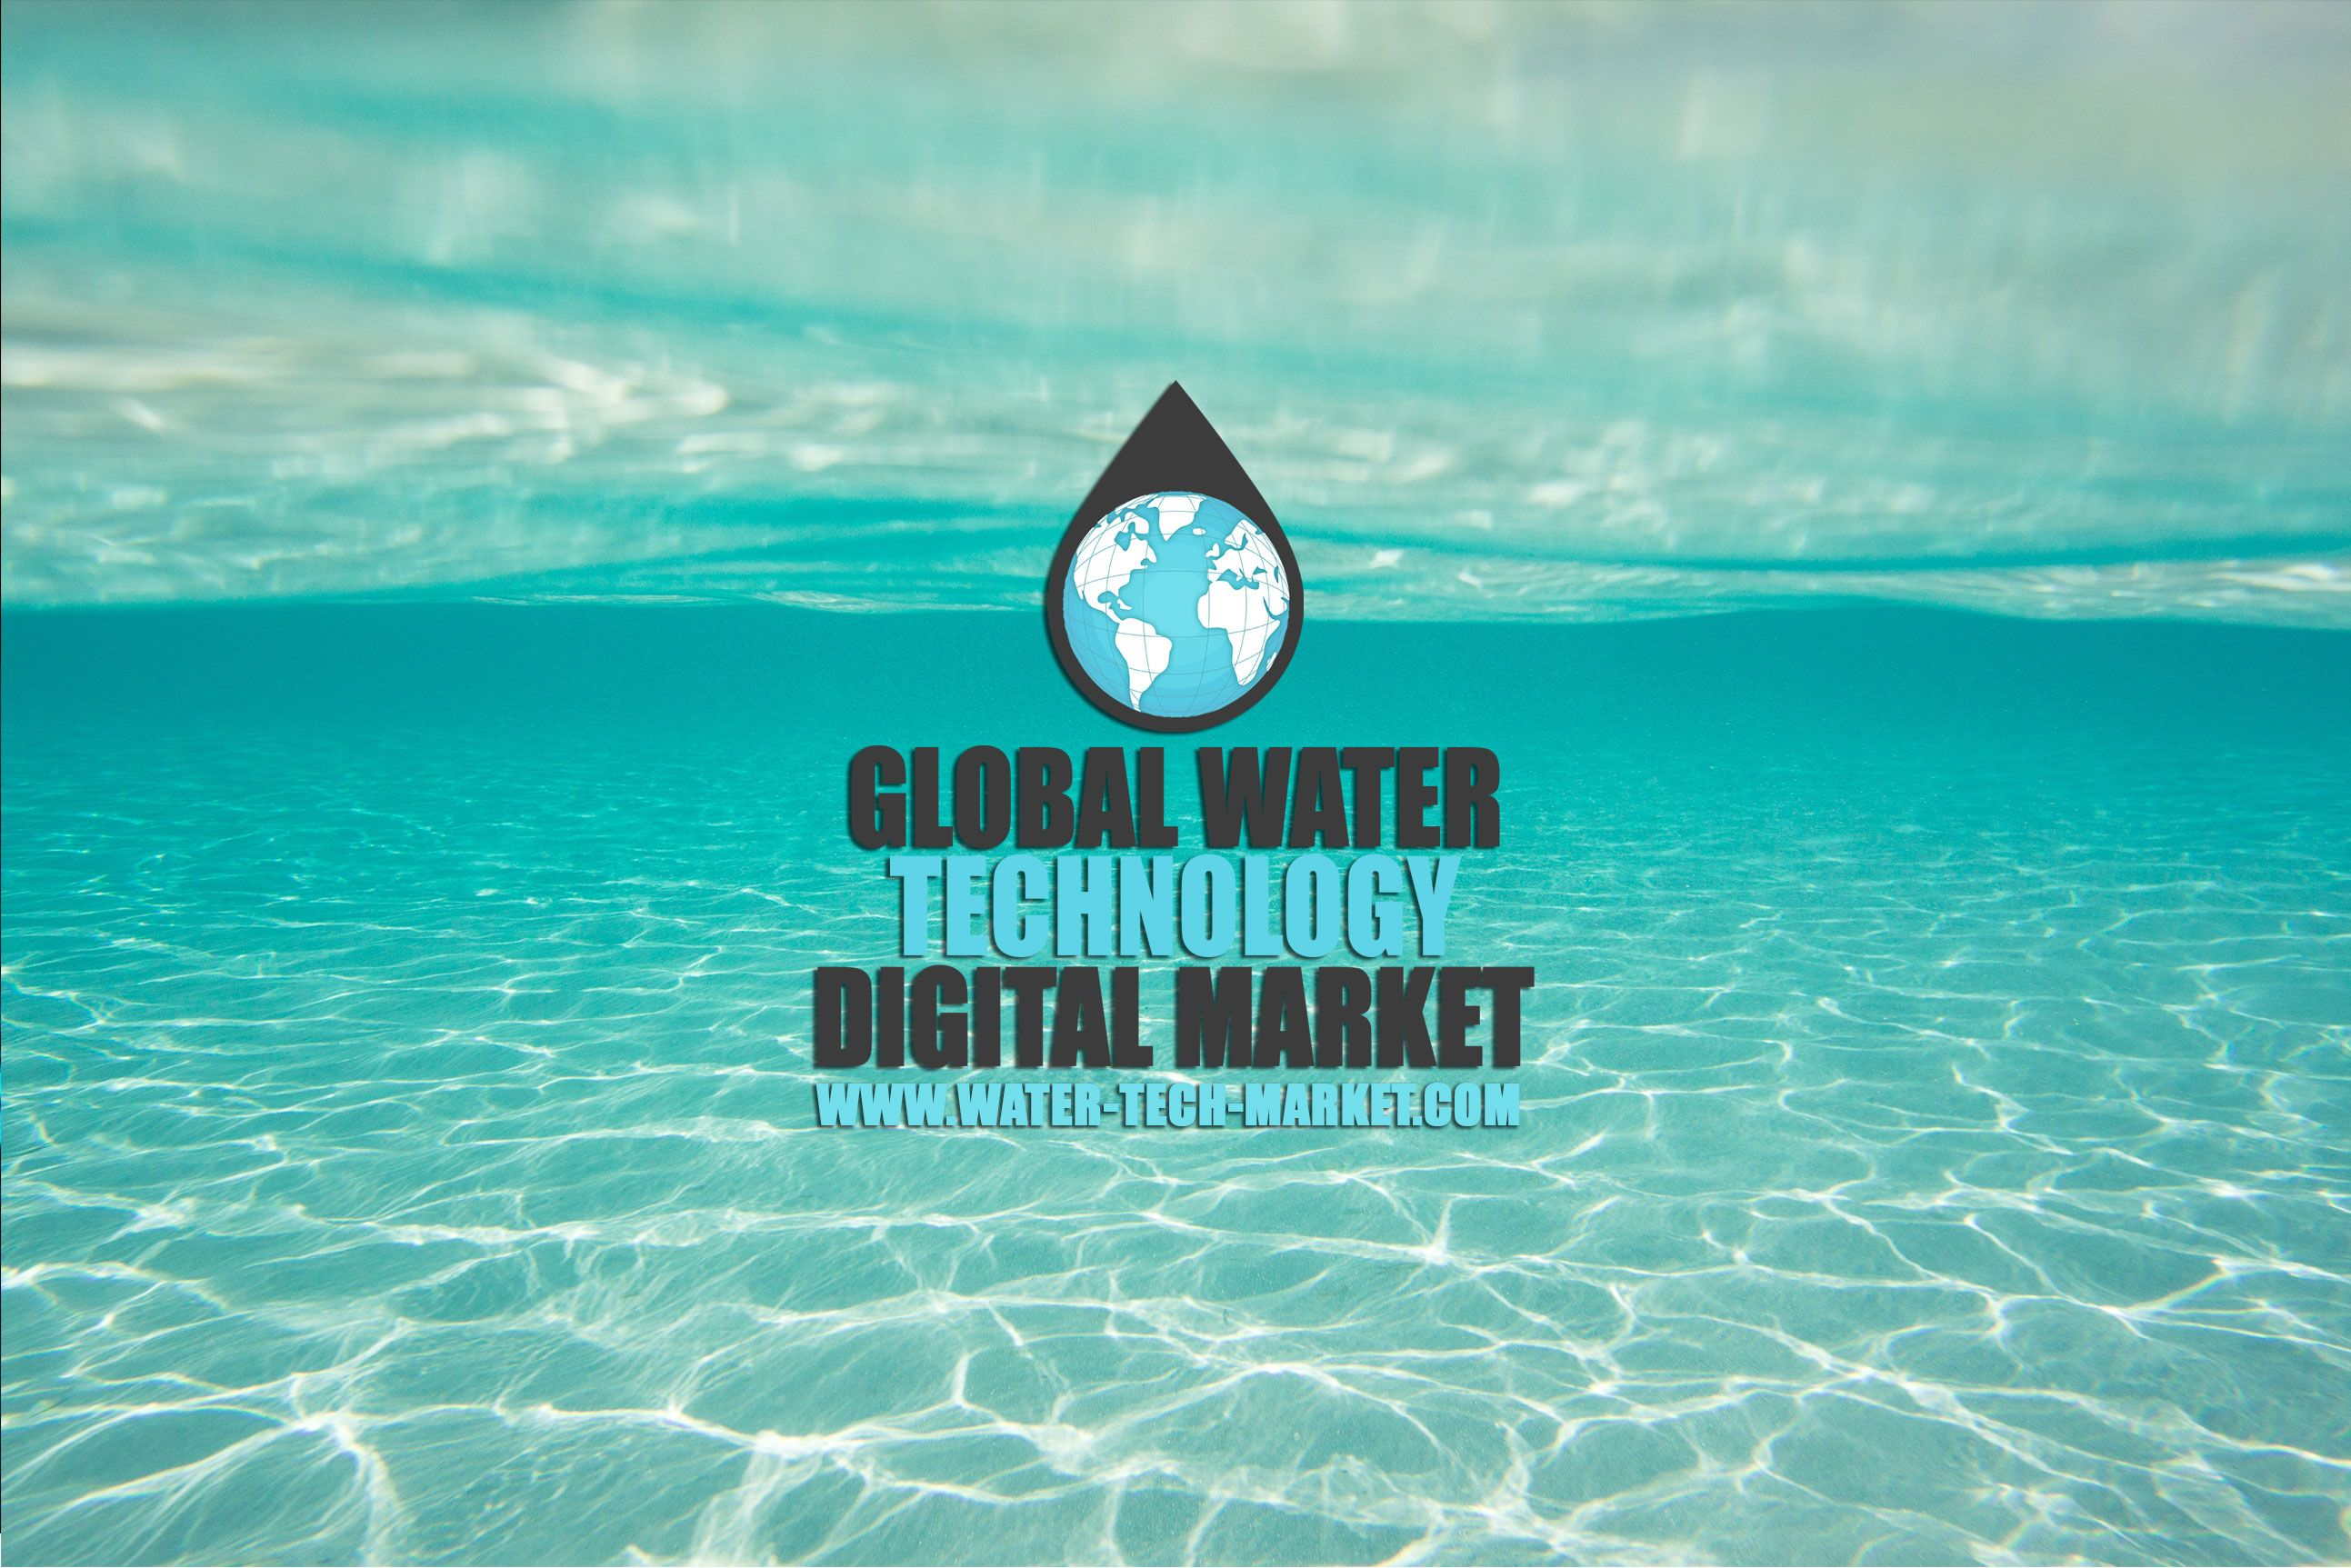 Global Water Technology Digital Market We Connecting Buyers With Suppliers For Water Technology Products And Solutions Around The Digital Technology Marketing